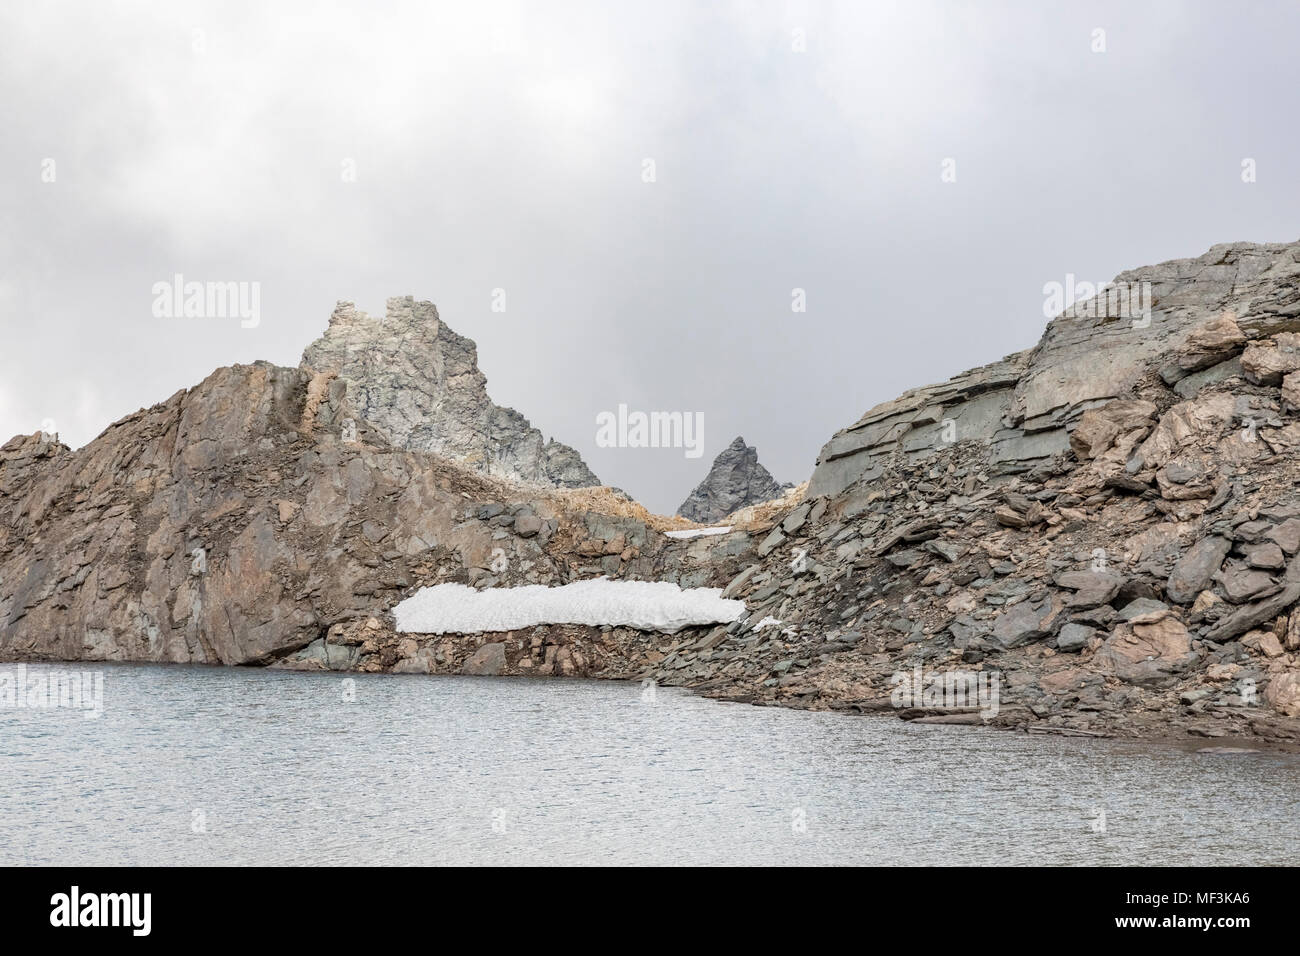 Italy, Piemont, Colle Sommeiller, Mountain lake - Stock Image